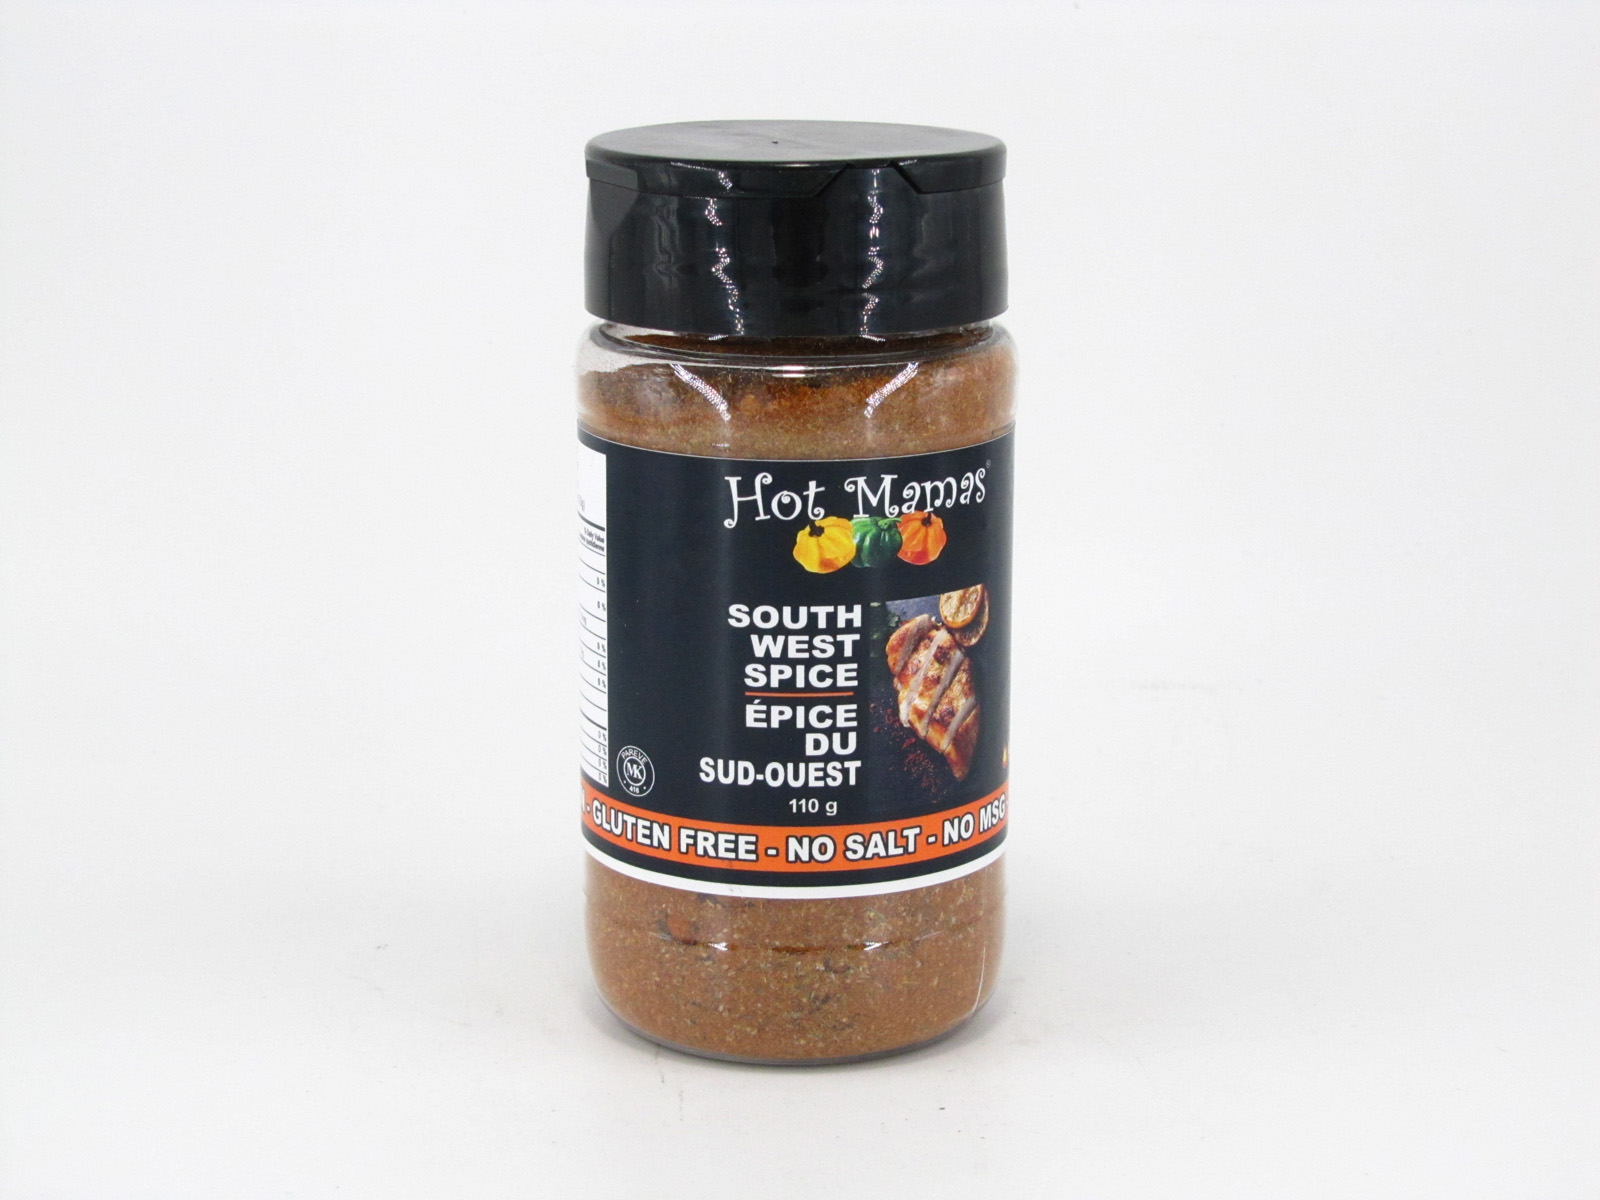 Hot Mamas Spice - South West - front view